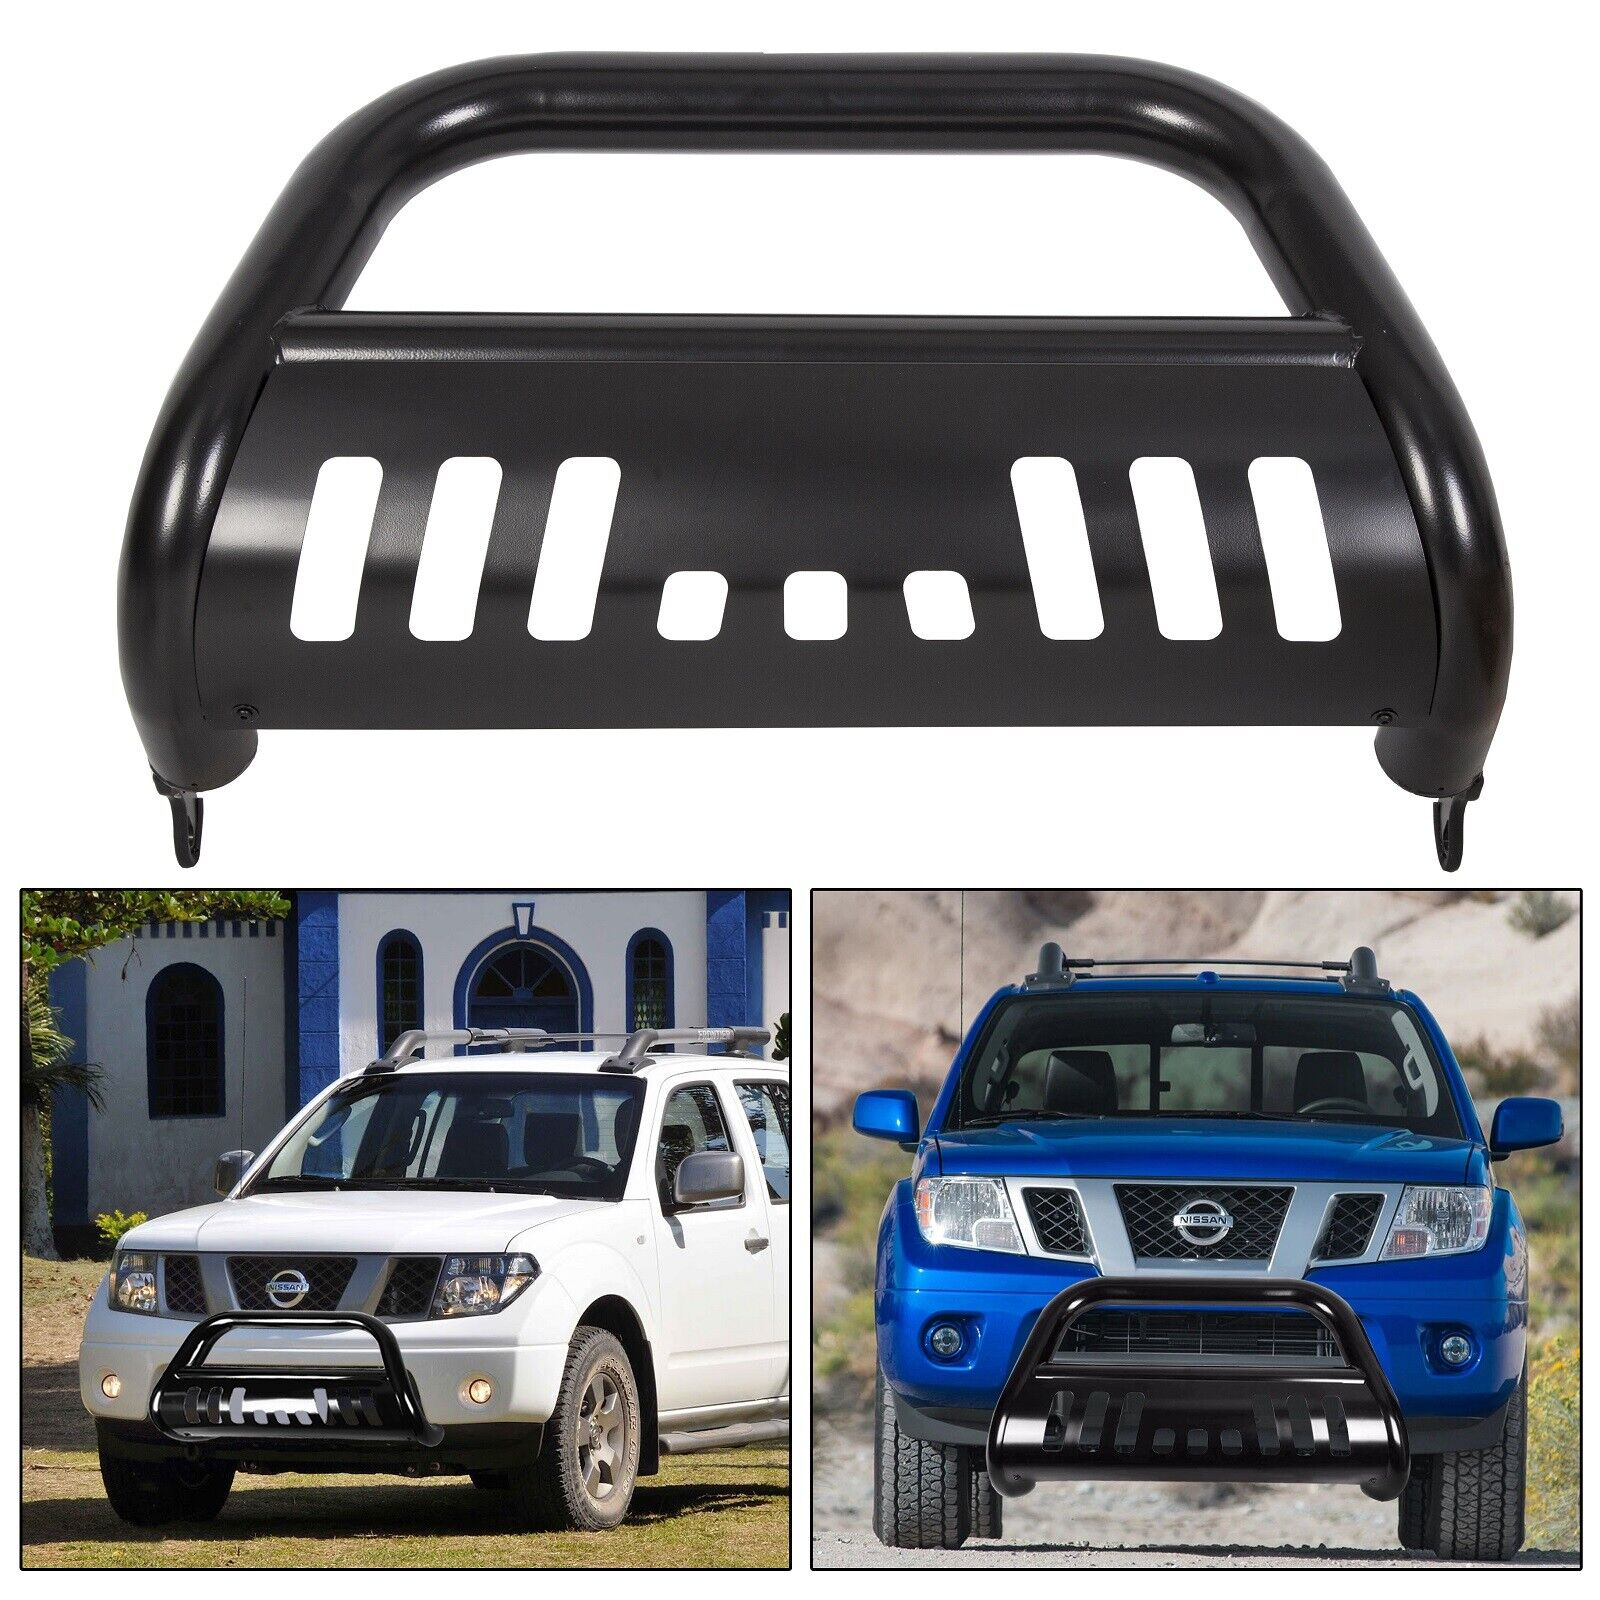 NV3500 Van Topline Autopart Black Bull Bar Brush Push Front Bumper Grill Grille Guard With Skid Plate For 12-18 Nissan NV1500 NV2500